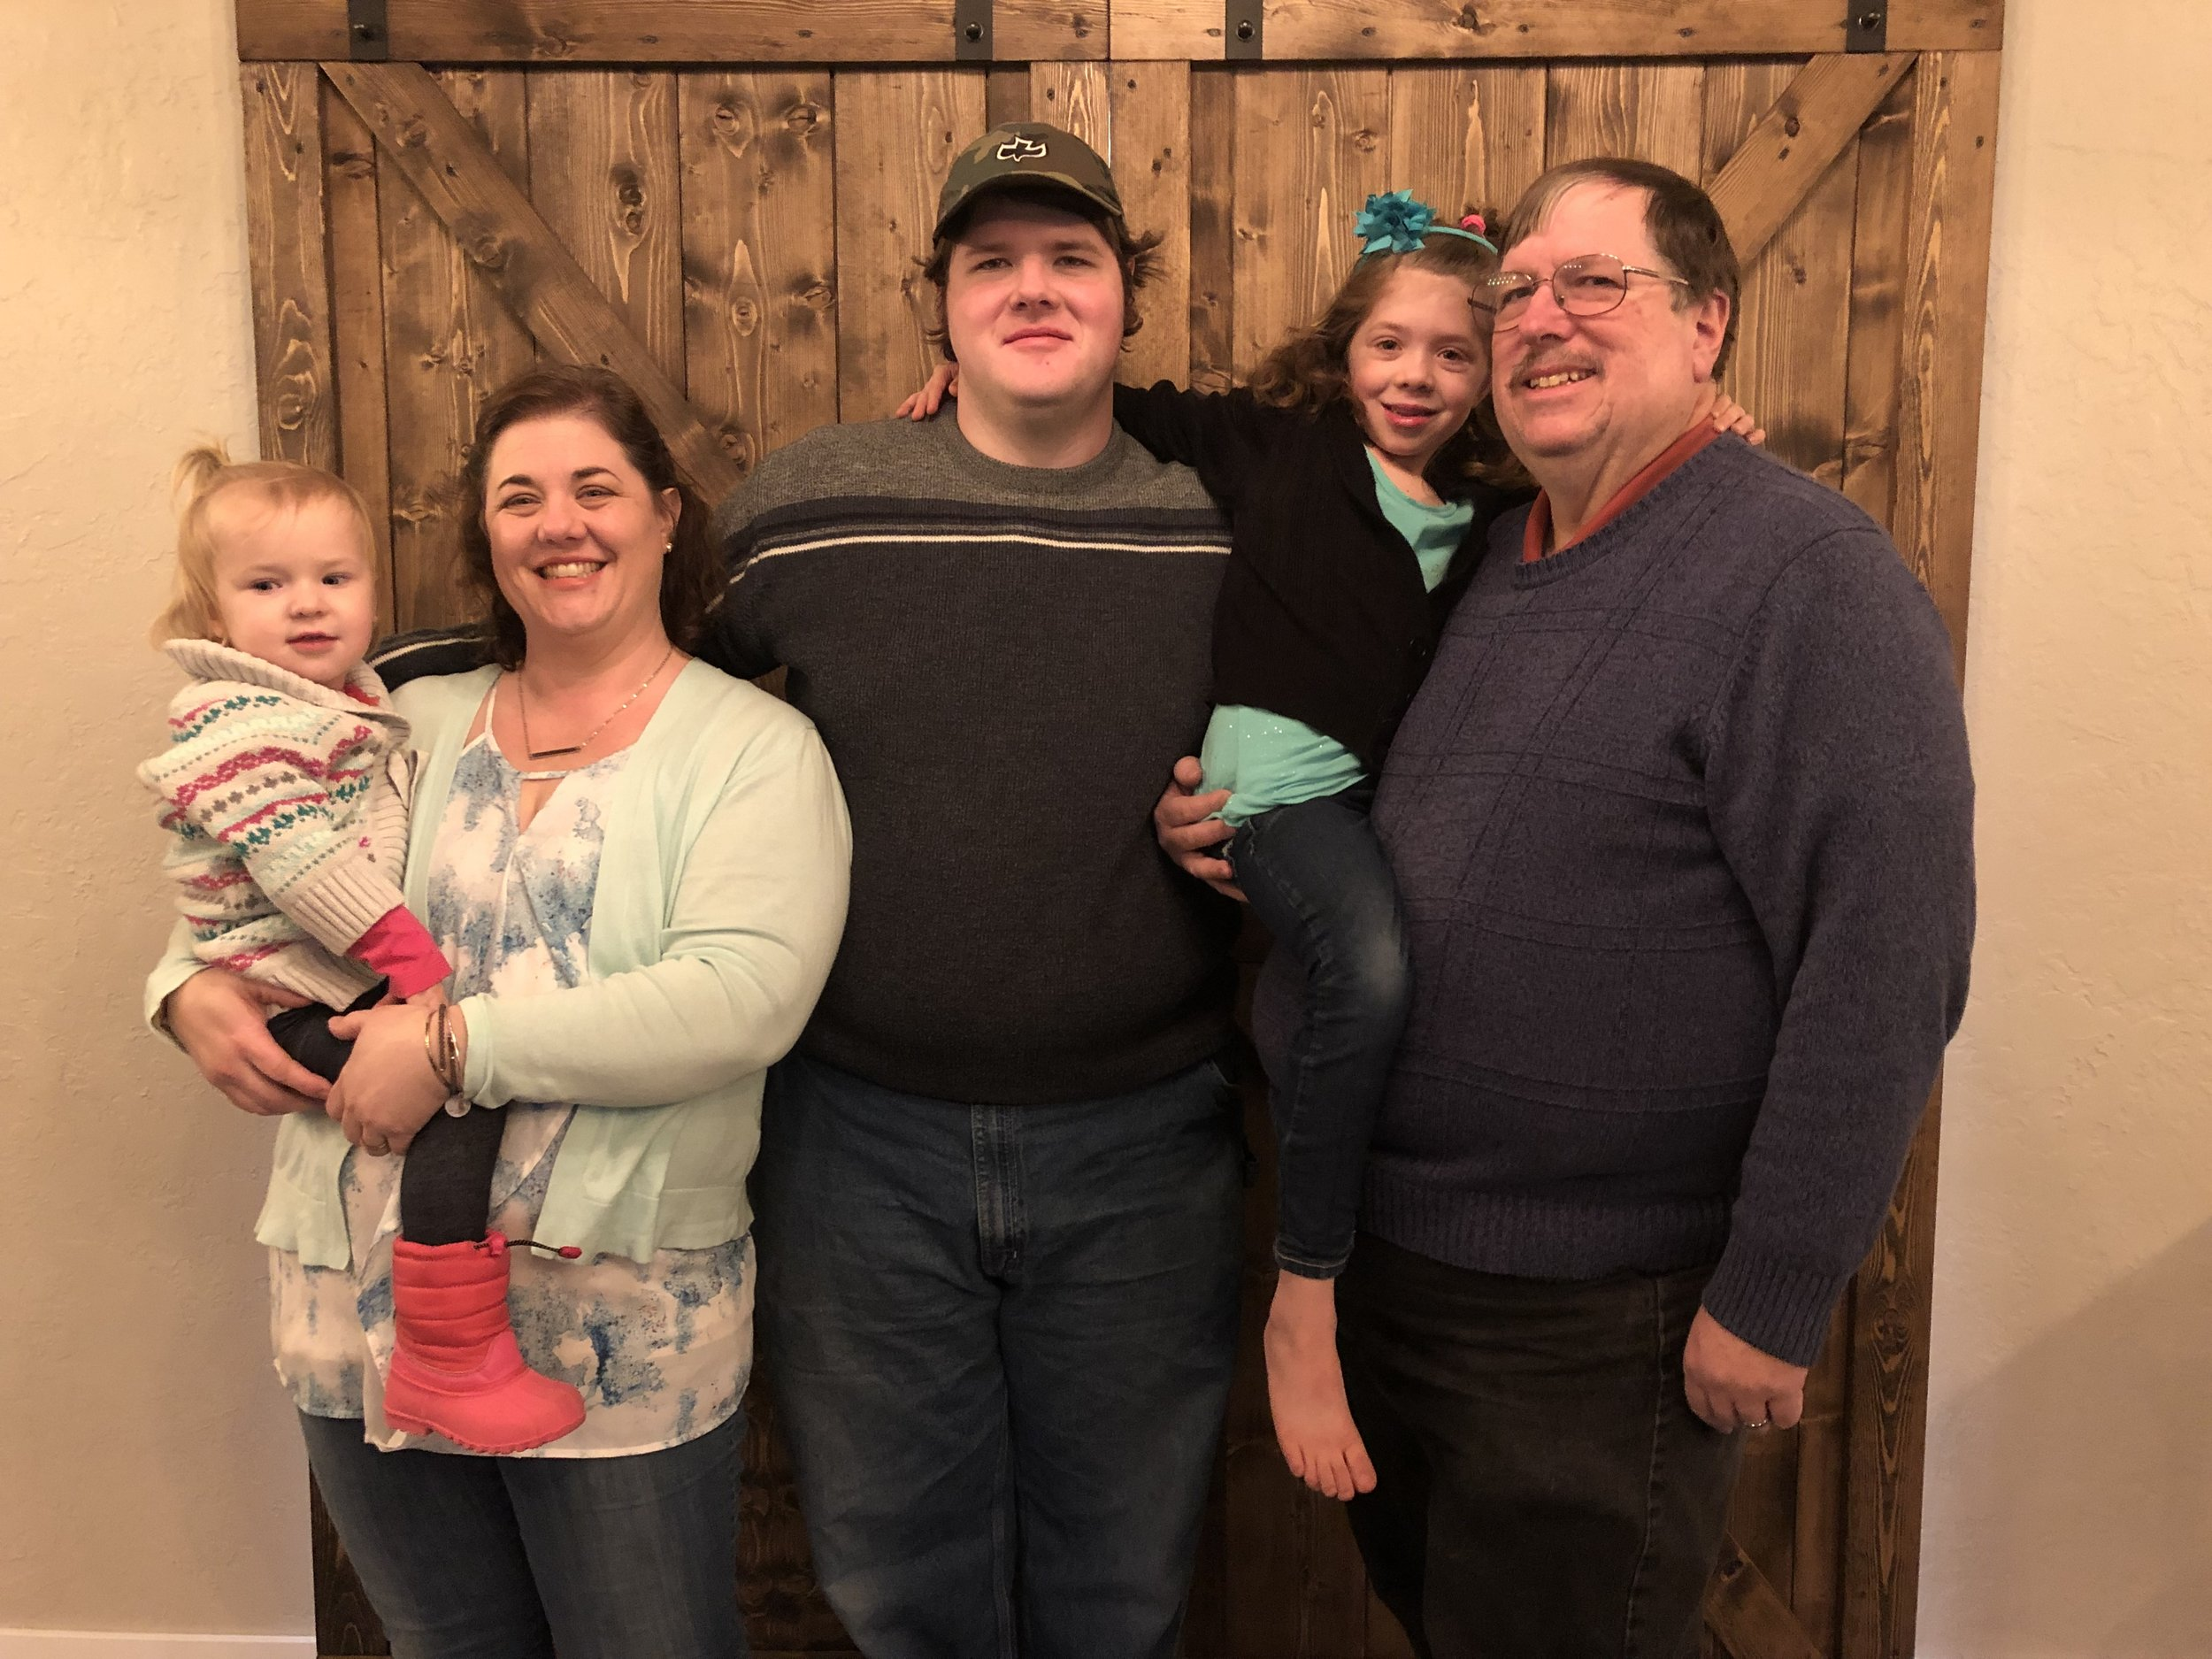 The Widdows Family currently serving in Sevier Valley, Utah - Amelia, Aleacia, Robby, Emma, and Pastor Allen were sent out from CC Monrovia almost a year ago and have seen much fruit as they seek to reach the LDS community of Utah. If you desire to support or come alongside them in prayer please fill out a submit form below and we will reach out to you as soon as possible. God bless!